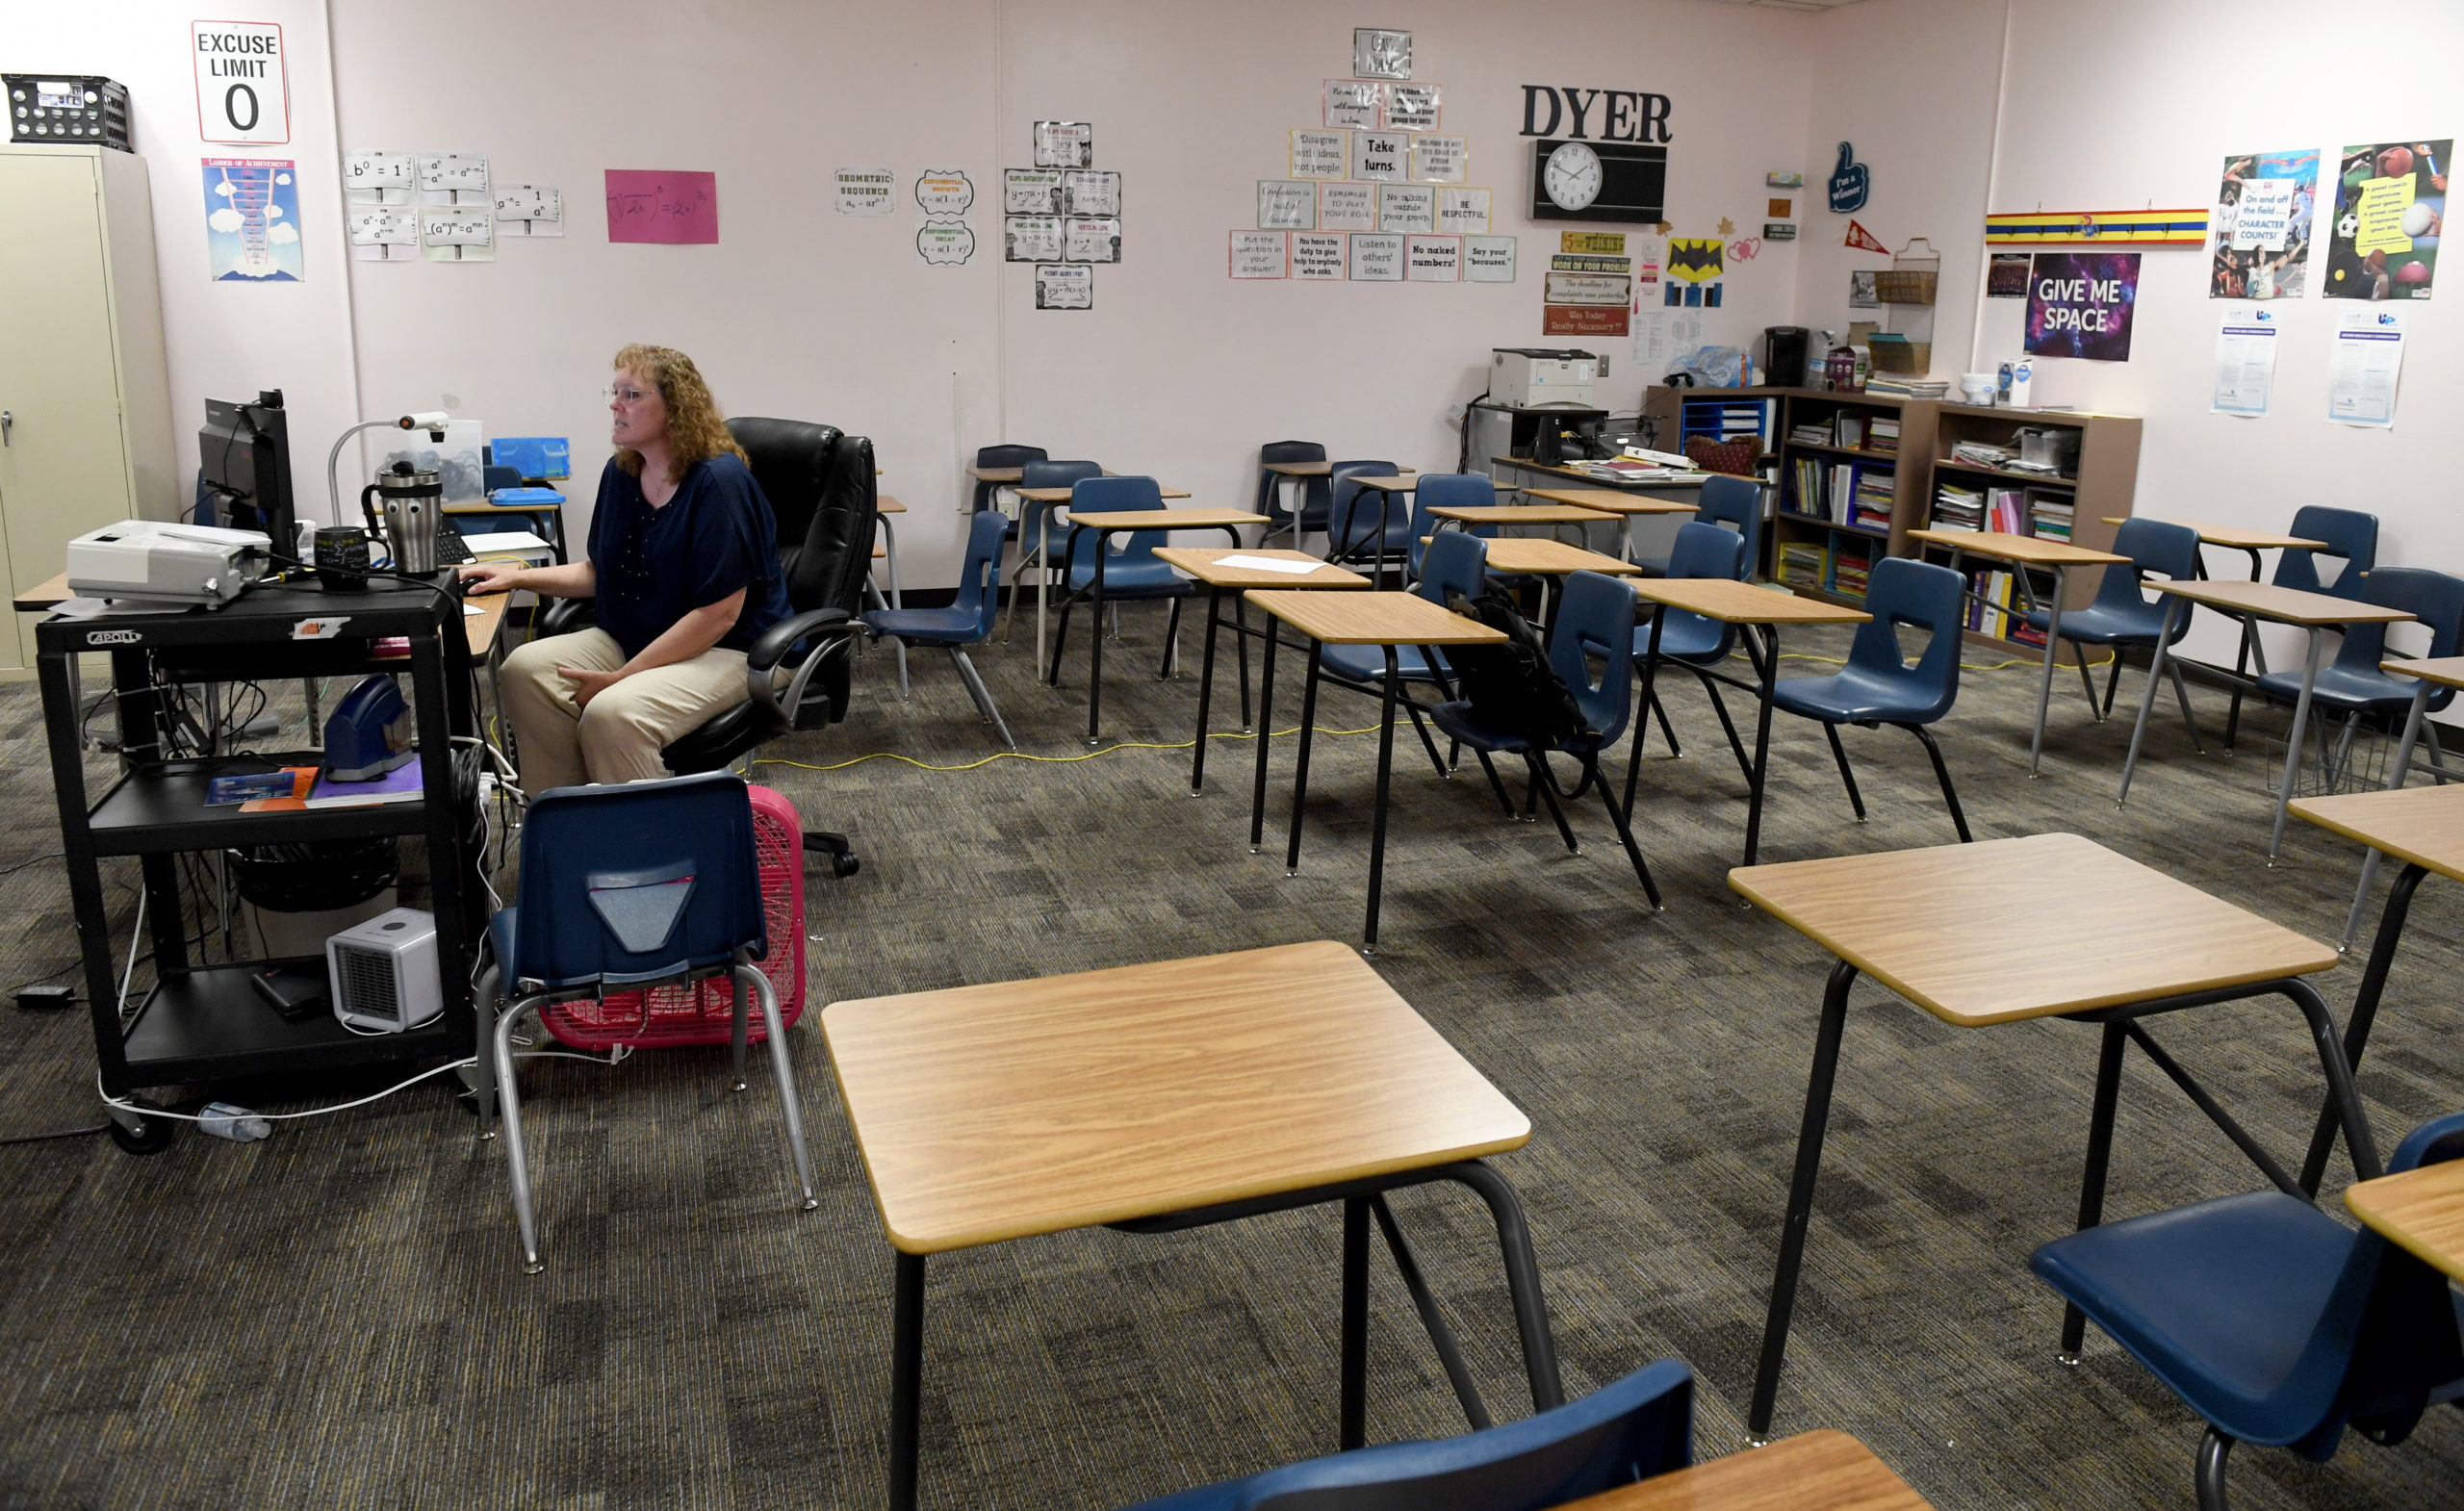 Dana Dyer teaches an online seventh grade algebra class from her empty classroom at Walter Johnson Junior High School on the first day of distance learning for the Clark County School District amid the spread of the coronavirus (COVID-19) on August 24, 2020 in Las Vegas, Nevada. CCSD, the fifth-largest school district in the United States with more than 315,000 students, decided to start the school year with a full-time distance education instructional model as part of its Reopening Our Schools Plan due to health and safety concerns over the pandemic. (Photo by Ethan Miller/Getty Images)